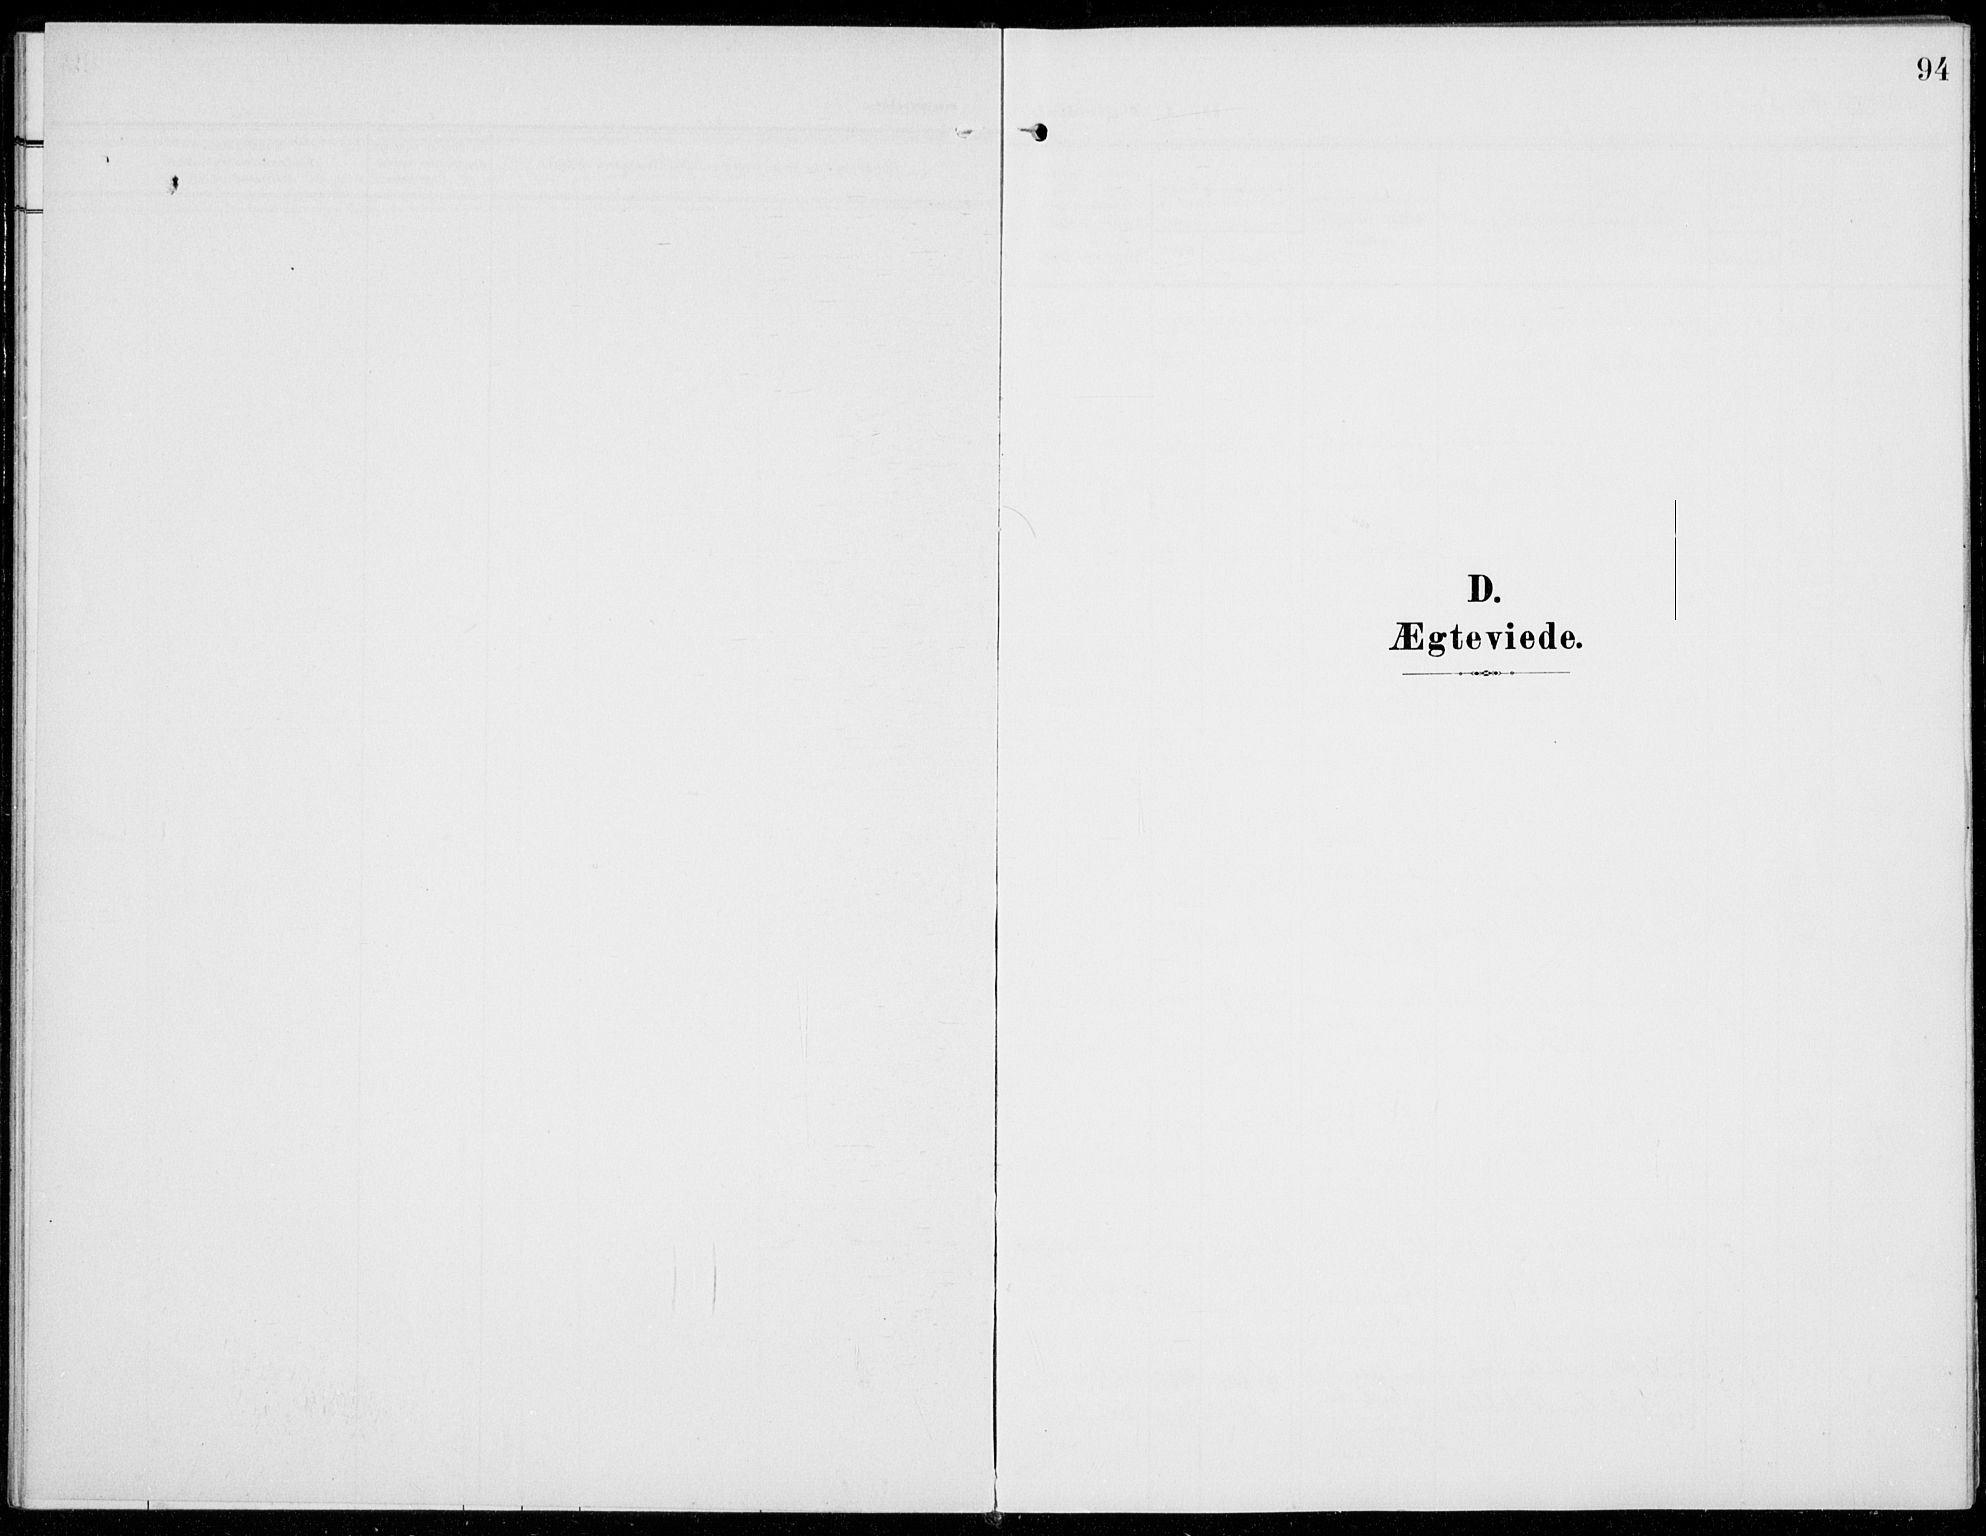 SAH, Sel prestekontor, Parish register (official) no. 1, 1905-1922, p. 94